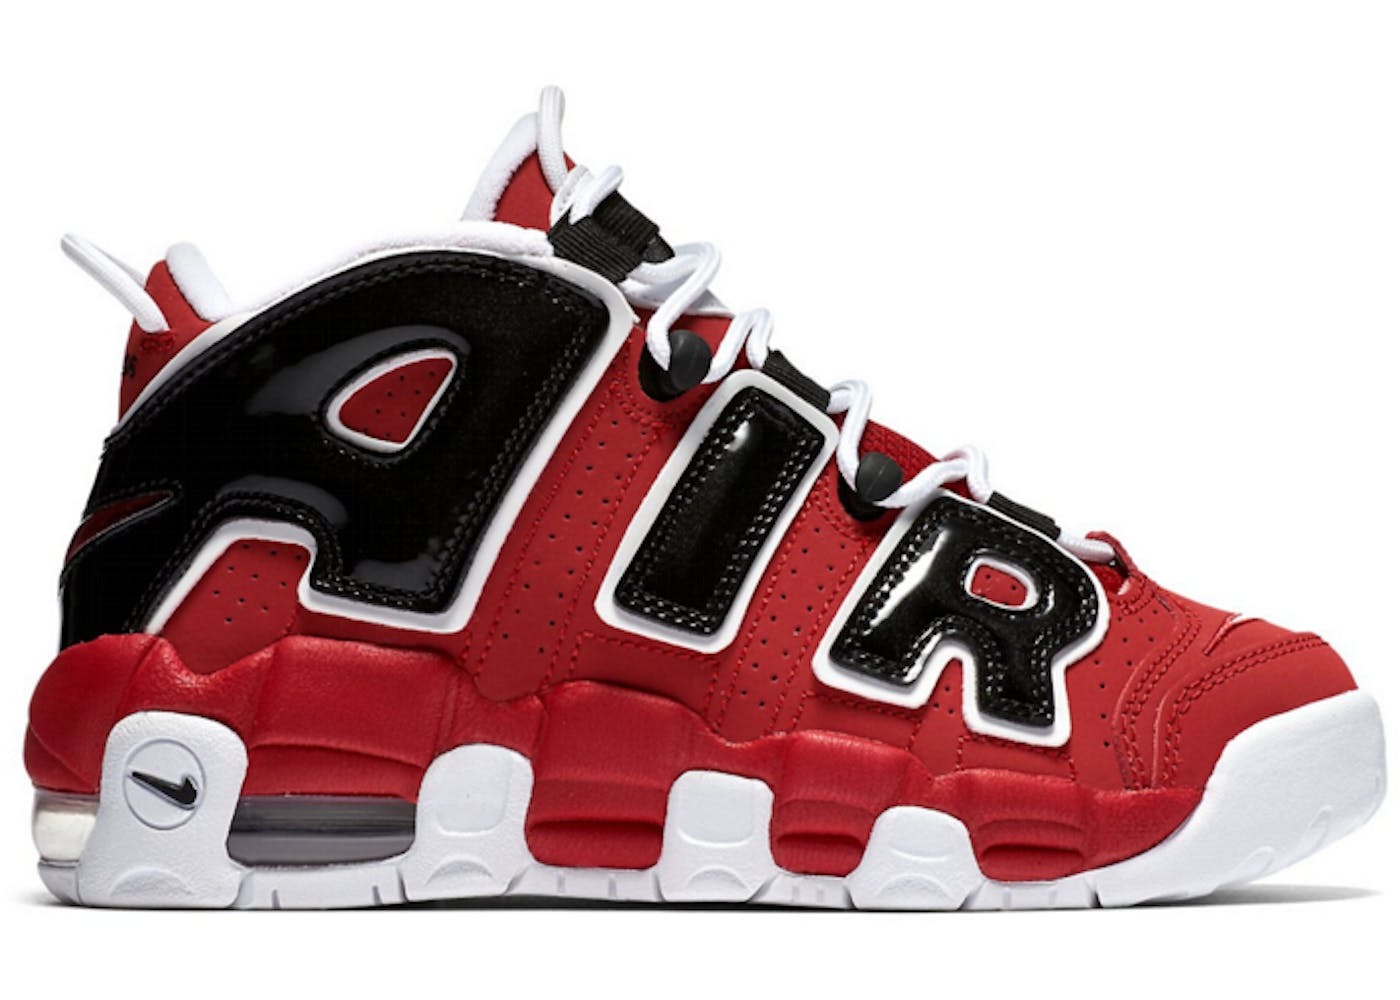 Nike Air More Uptempo Size 7.5